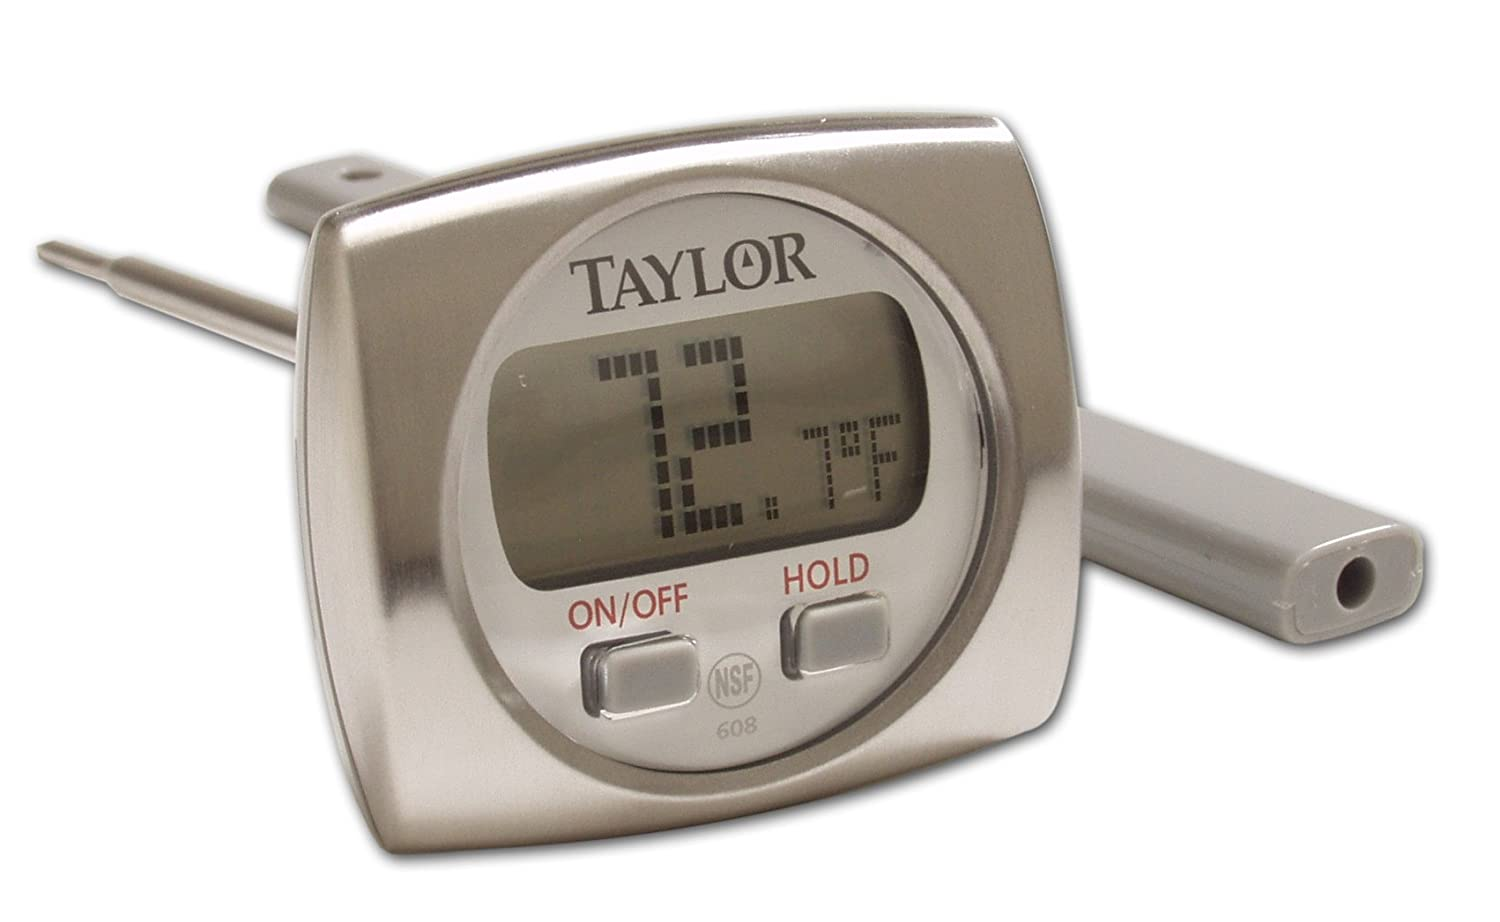 Taylor Precision Products Elite Digital Thermometer Taylor Thermometers 608